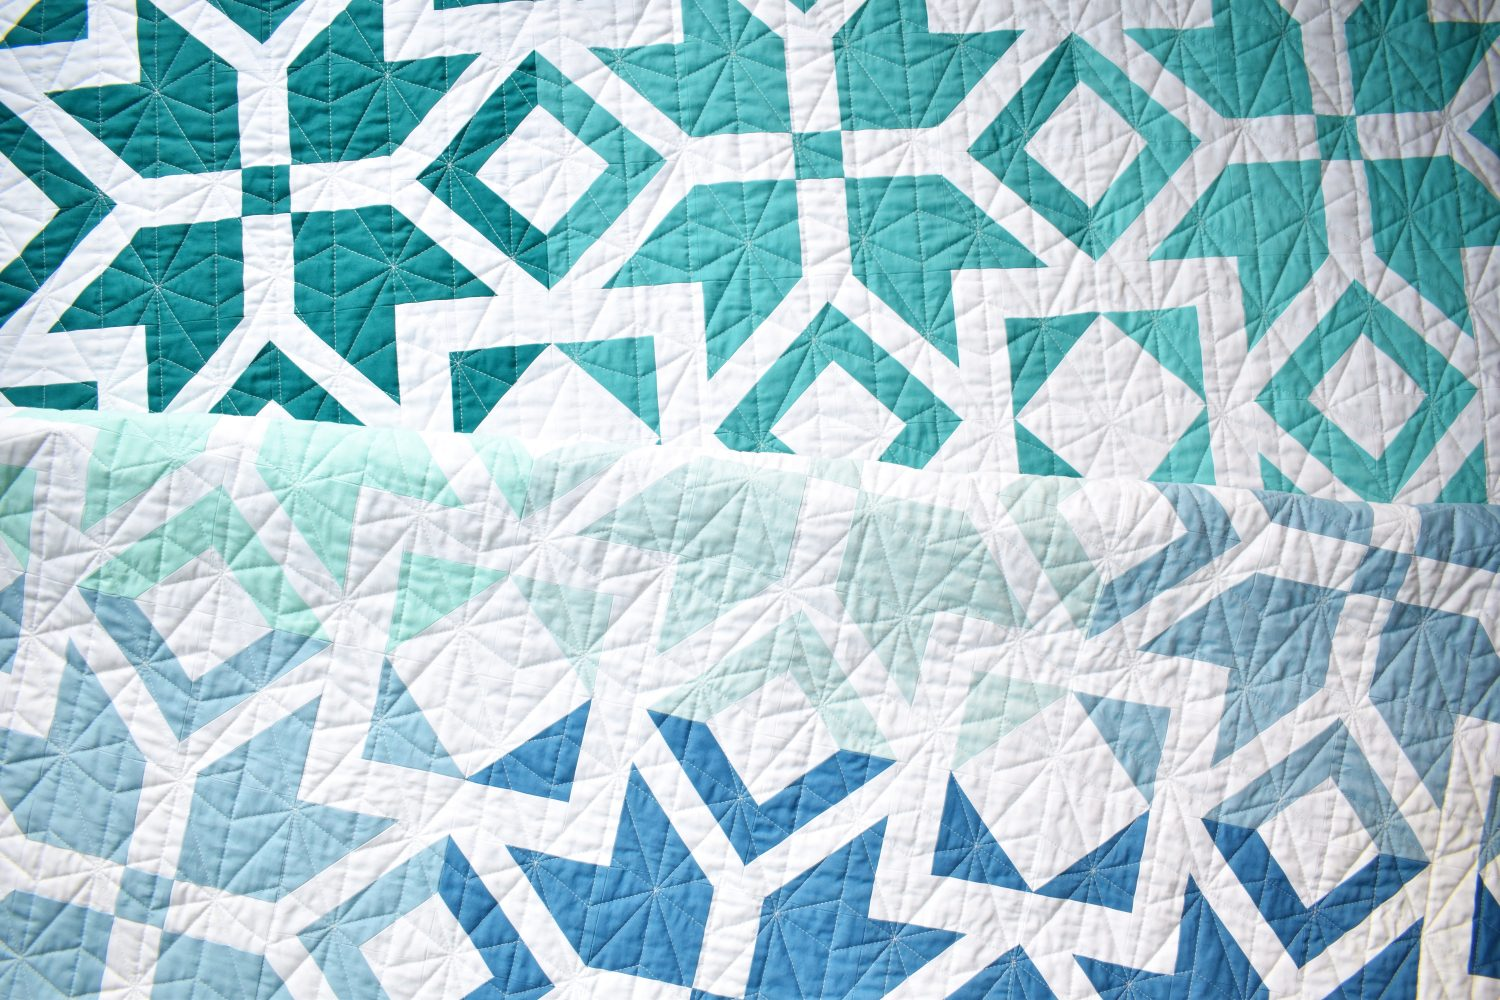 Nordic Star Ombre quilt detailed quilting design